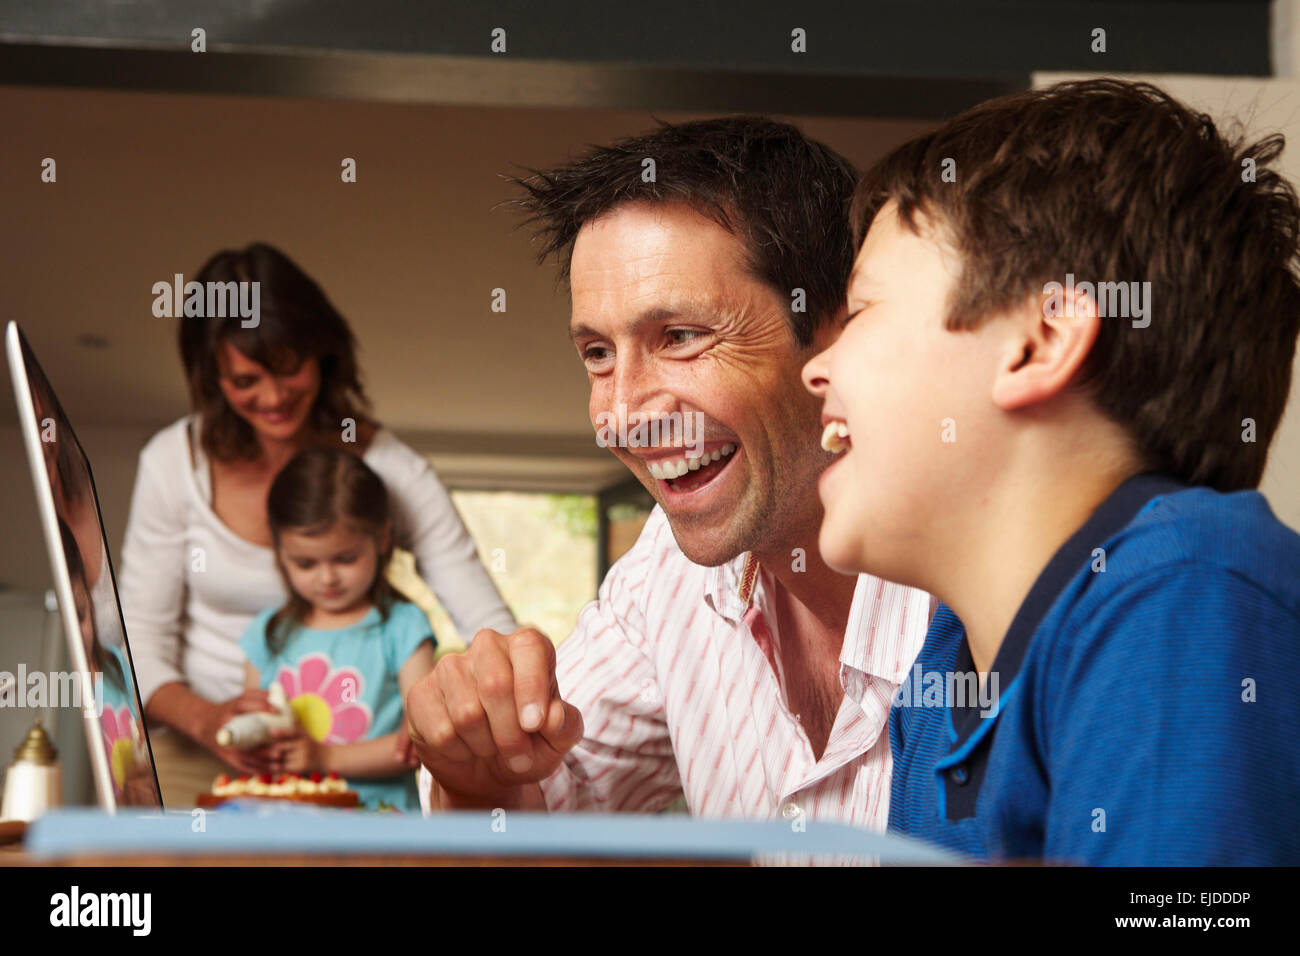 A family, two parents and two children together at home. A father and son on a laptop, and mother and daughter icing - Stock Image